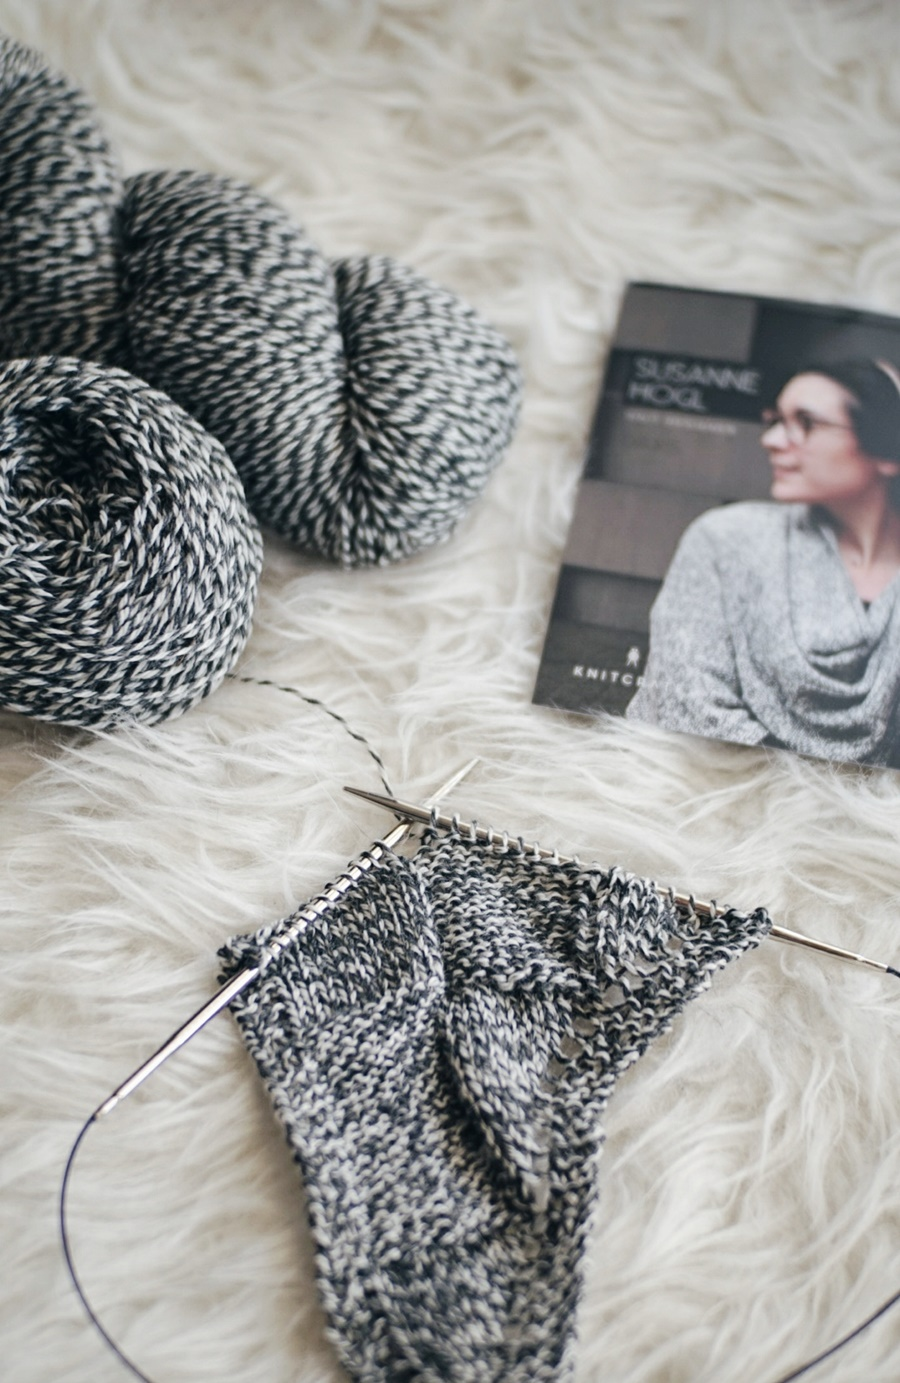 MY FIRST KNITCRATE – A REVIEW